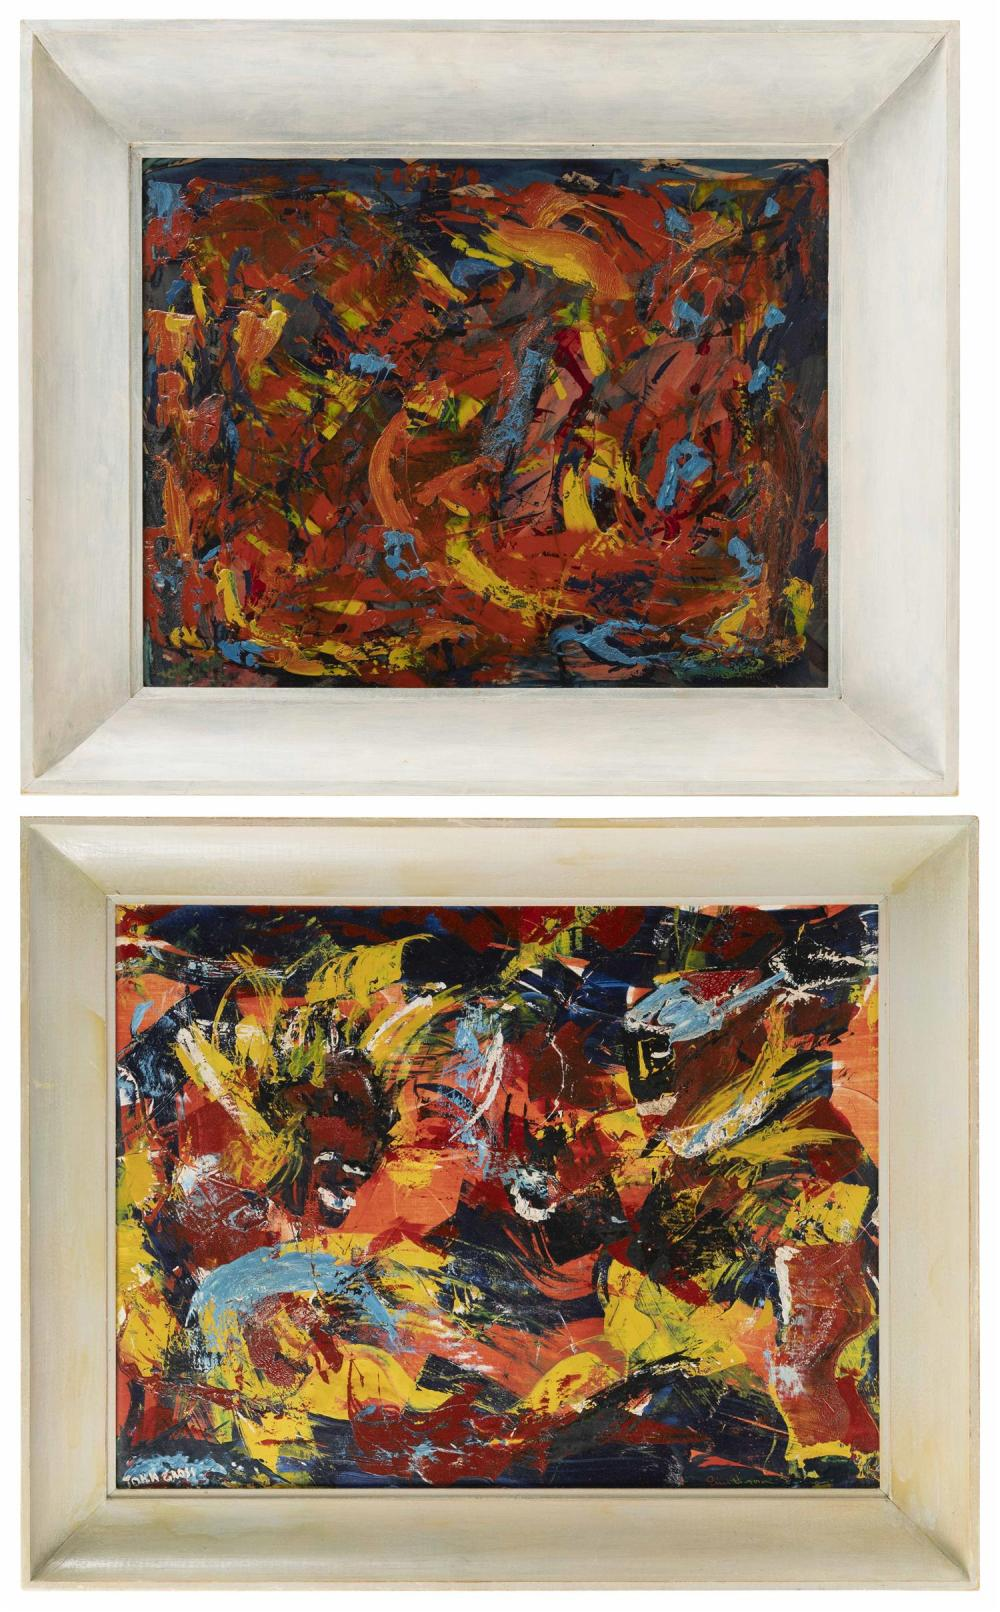 "JOHN GROSS, America, 20th Century, Pair of abstract paintings., Oils on board, 16"" x 20"". Framed 21"" x 25""."